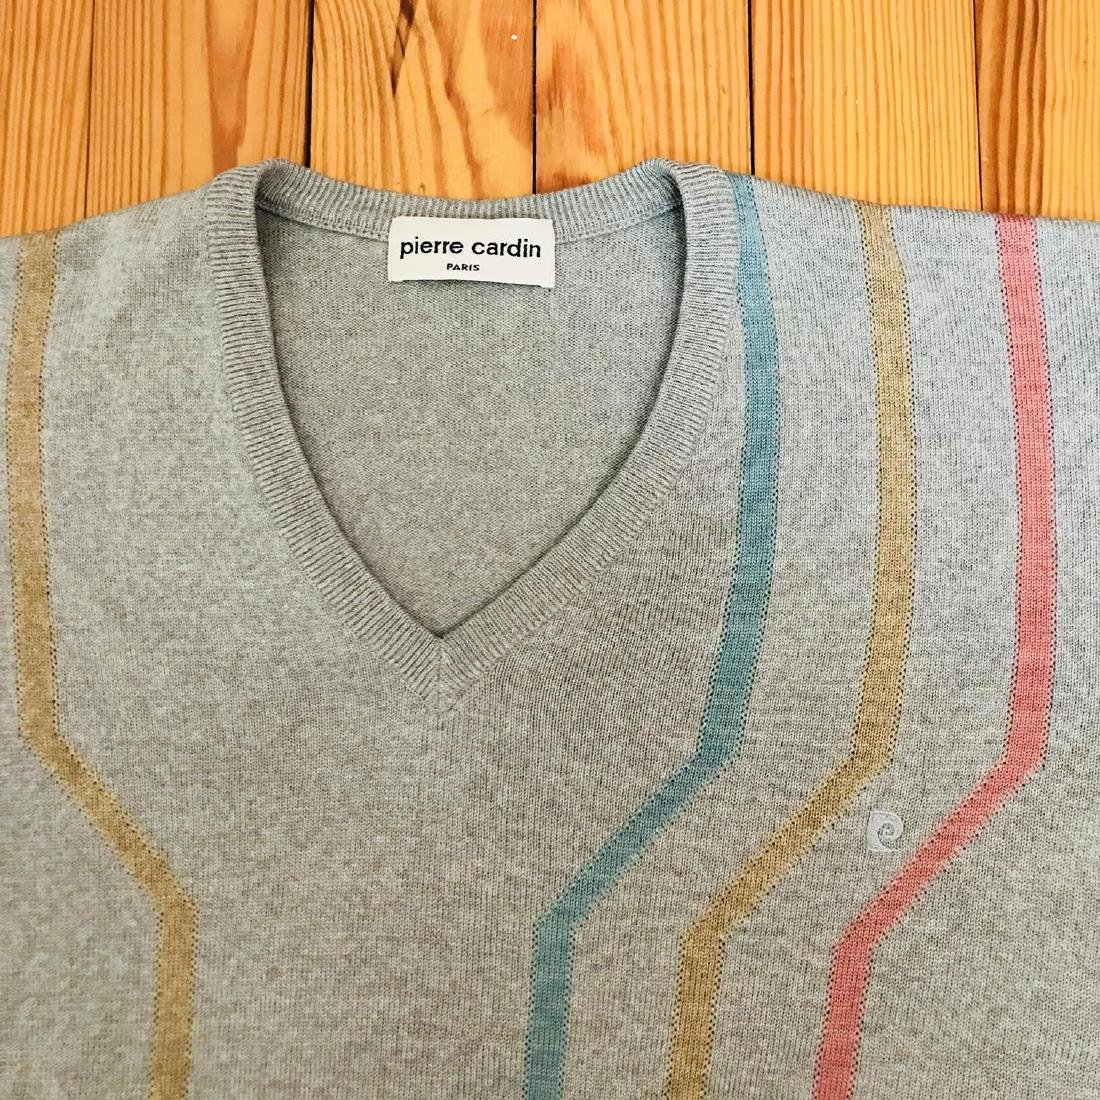 Vintage Men's Pierre Cardin Wool Sweater Size L - 7